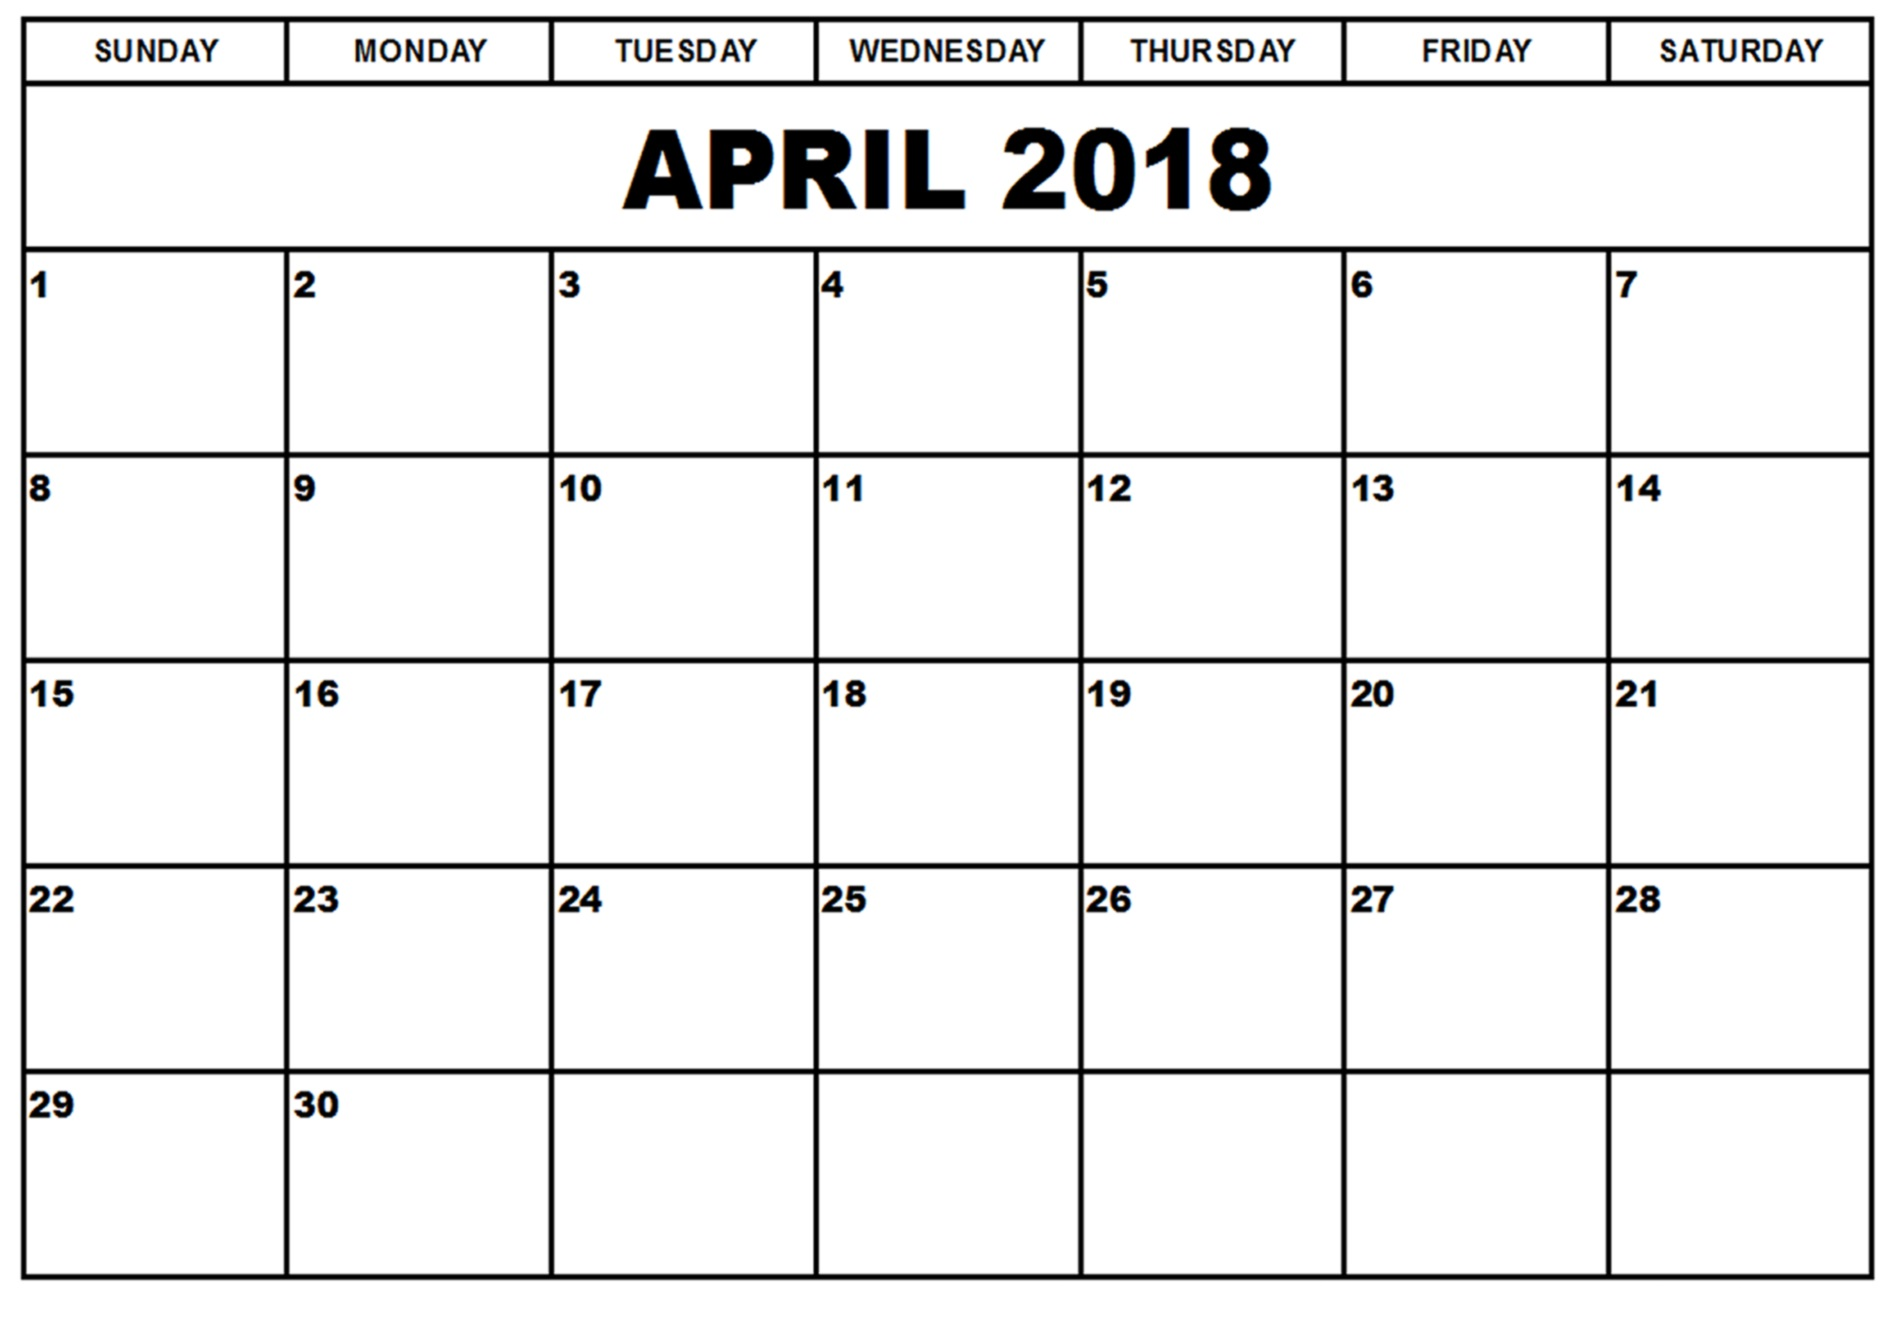 April 2018 Calendar Printable Templates | This site provides